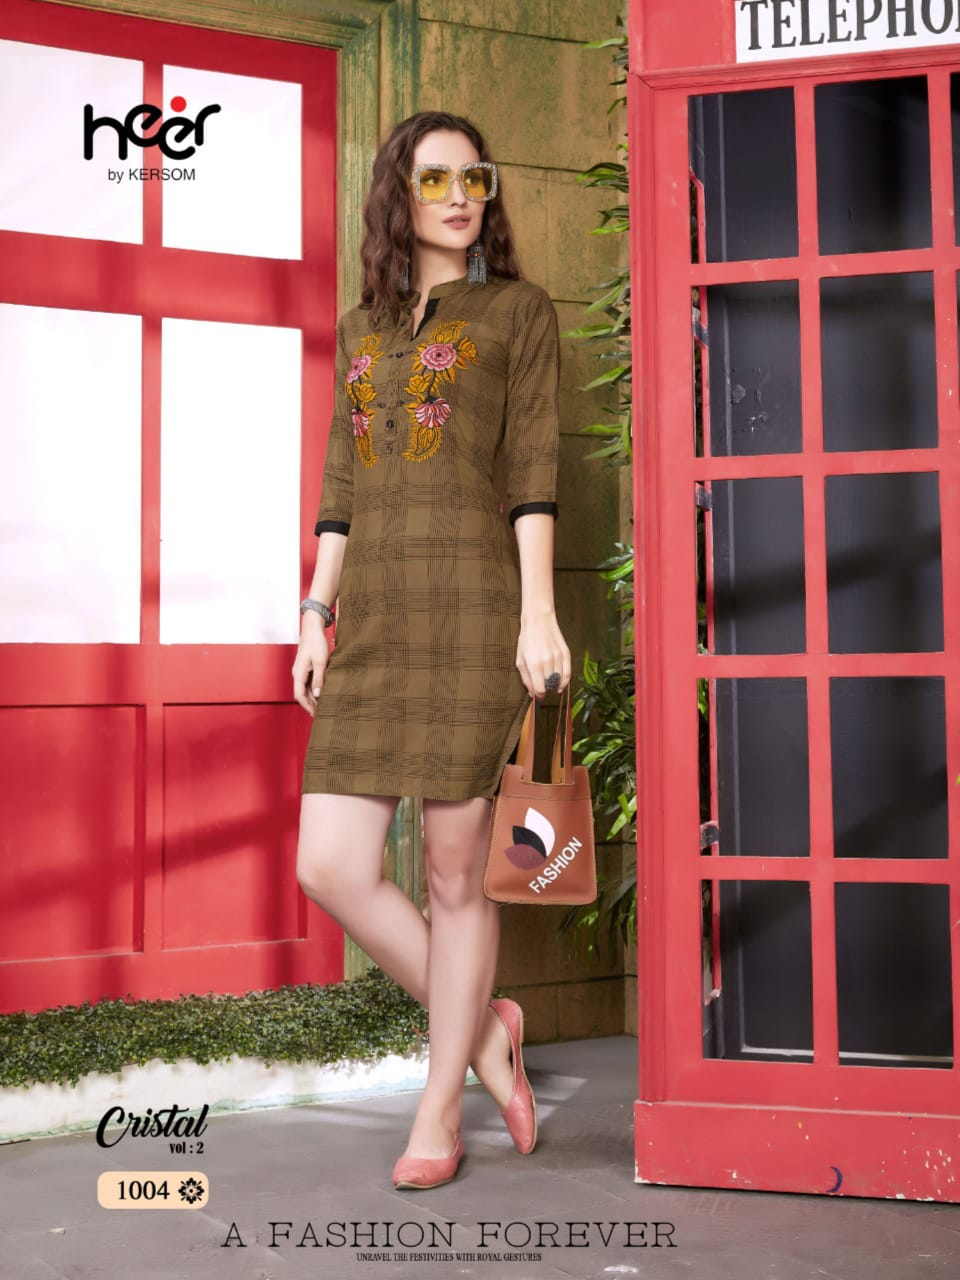 Heer Cristal 2 collection 1